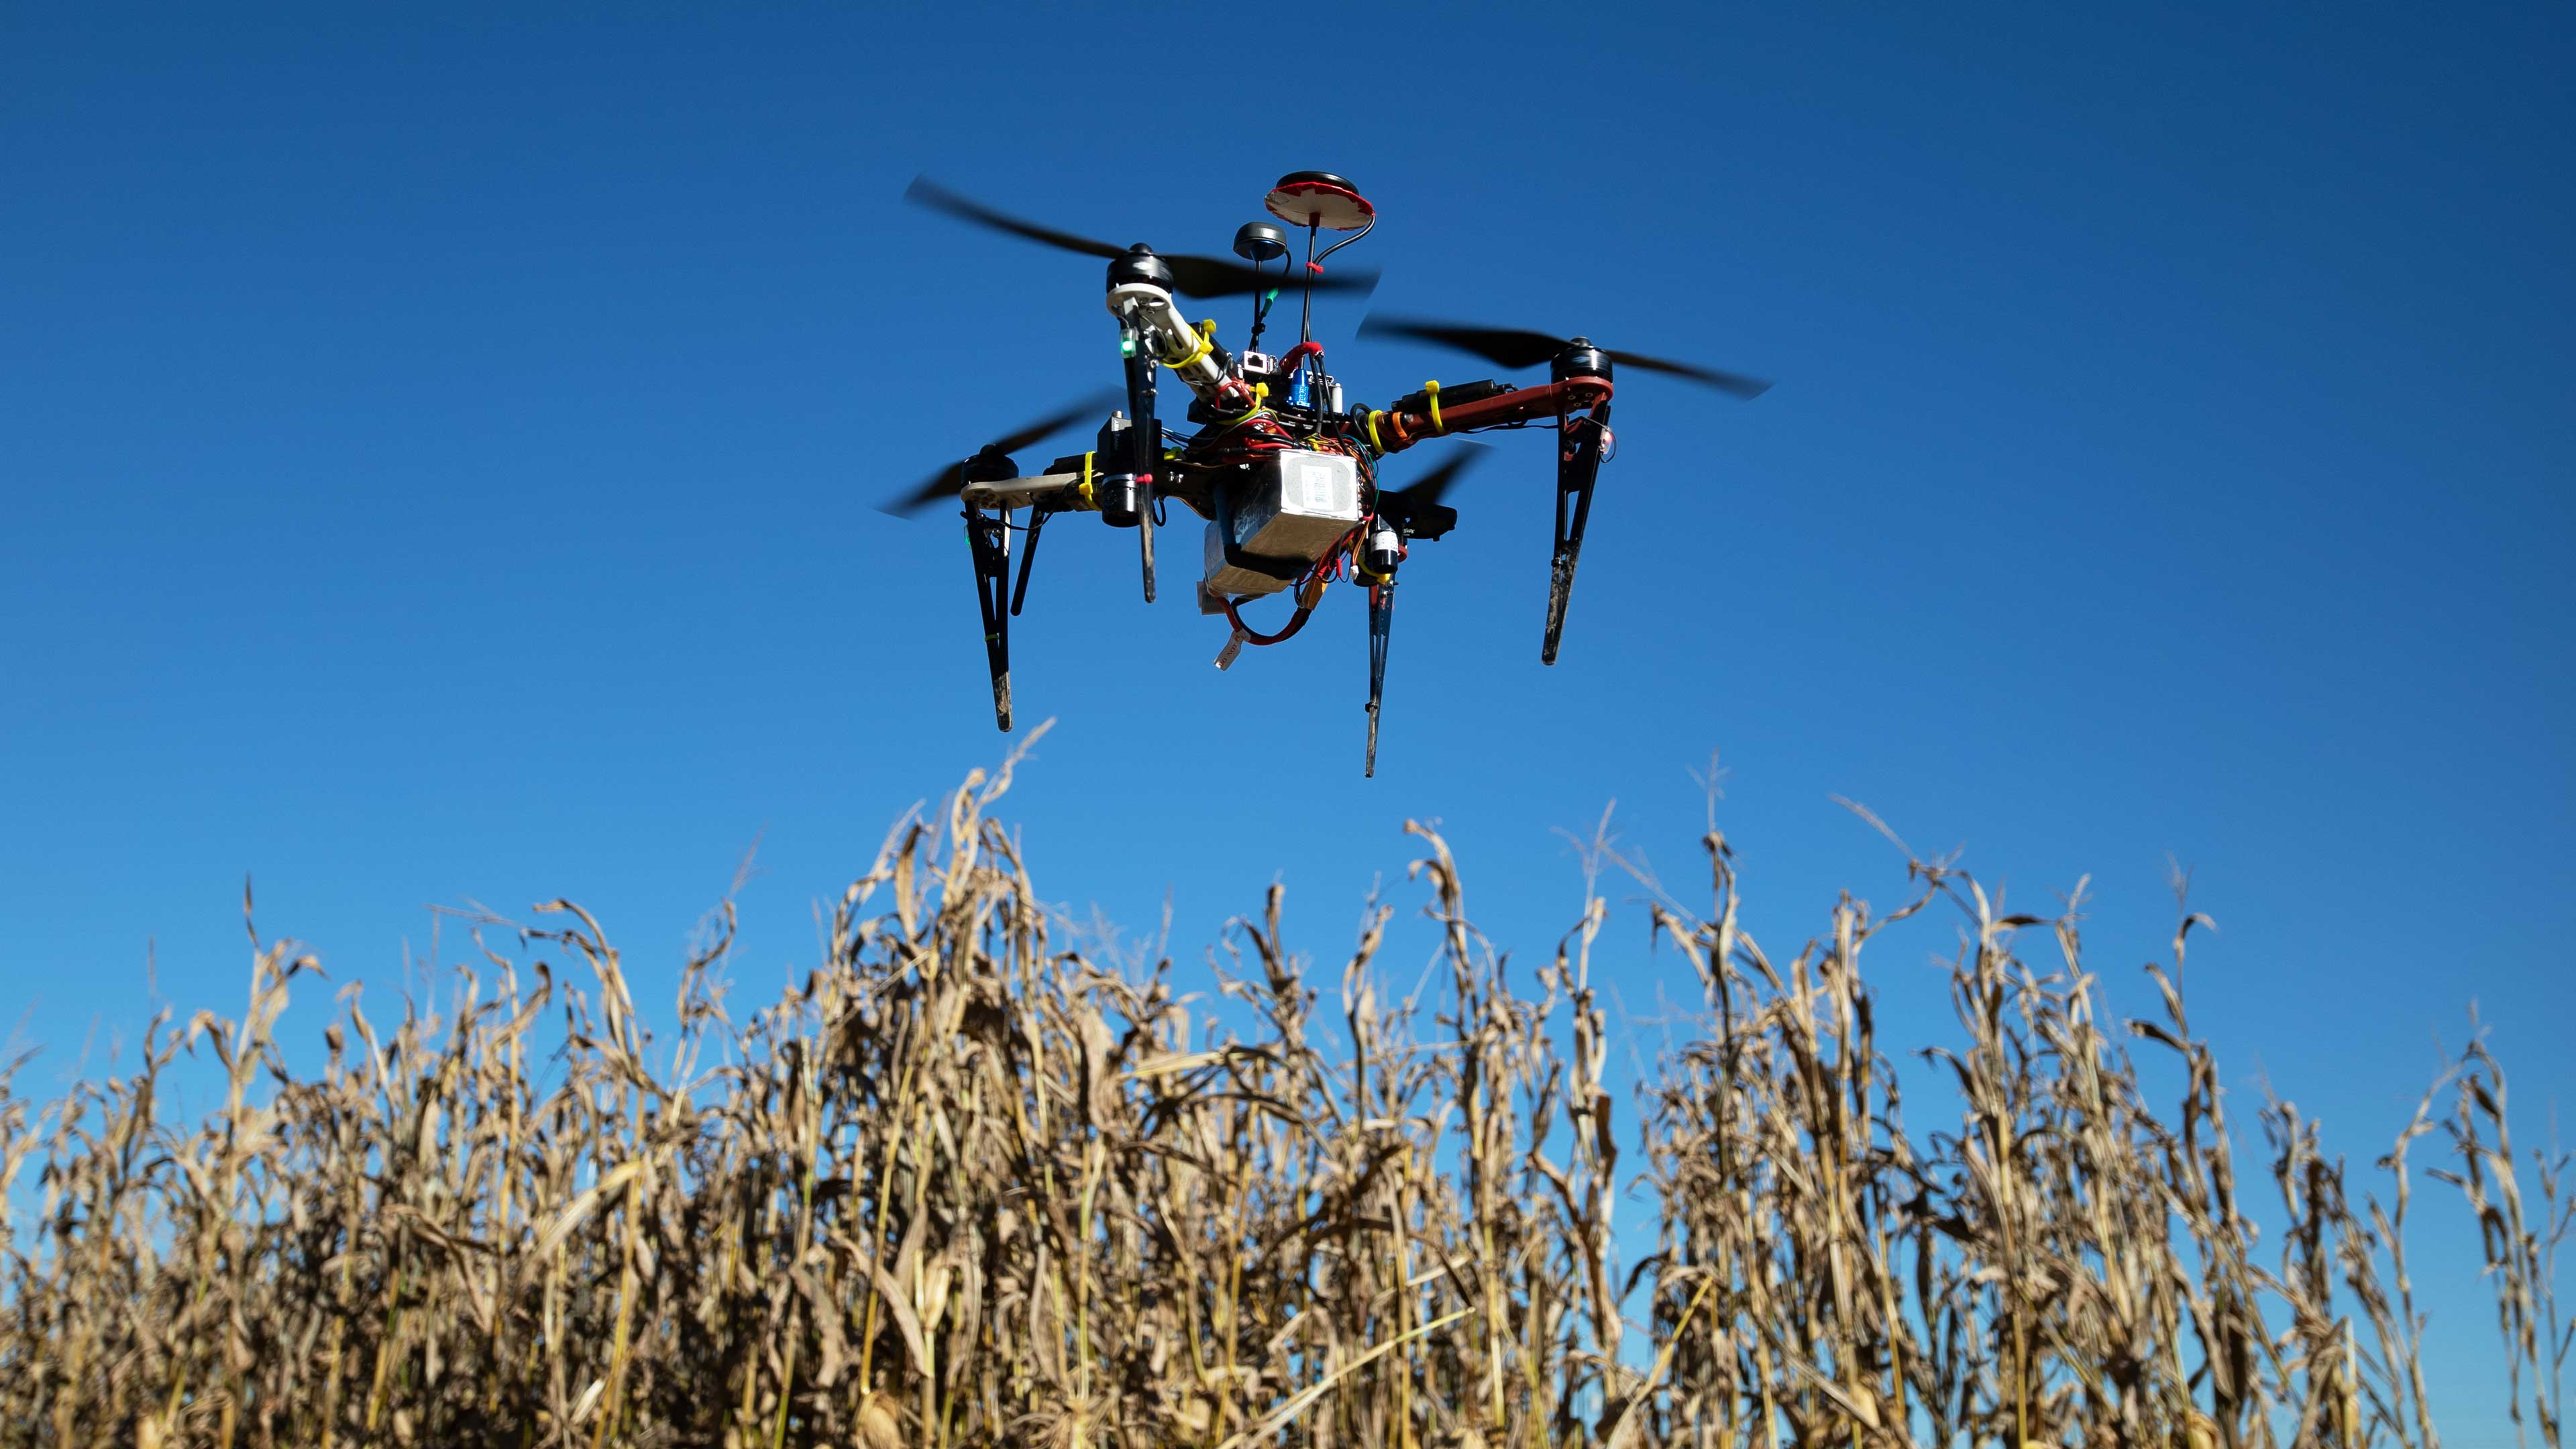 A drone hovers in the air above tall corn stalks.